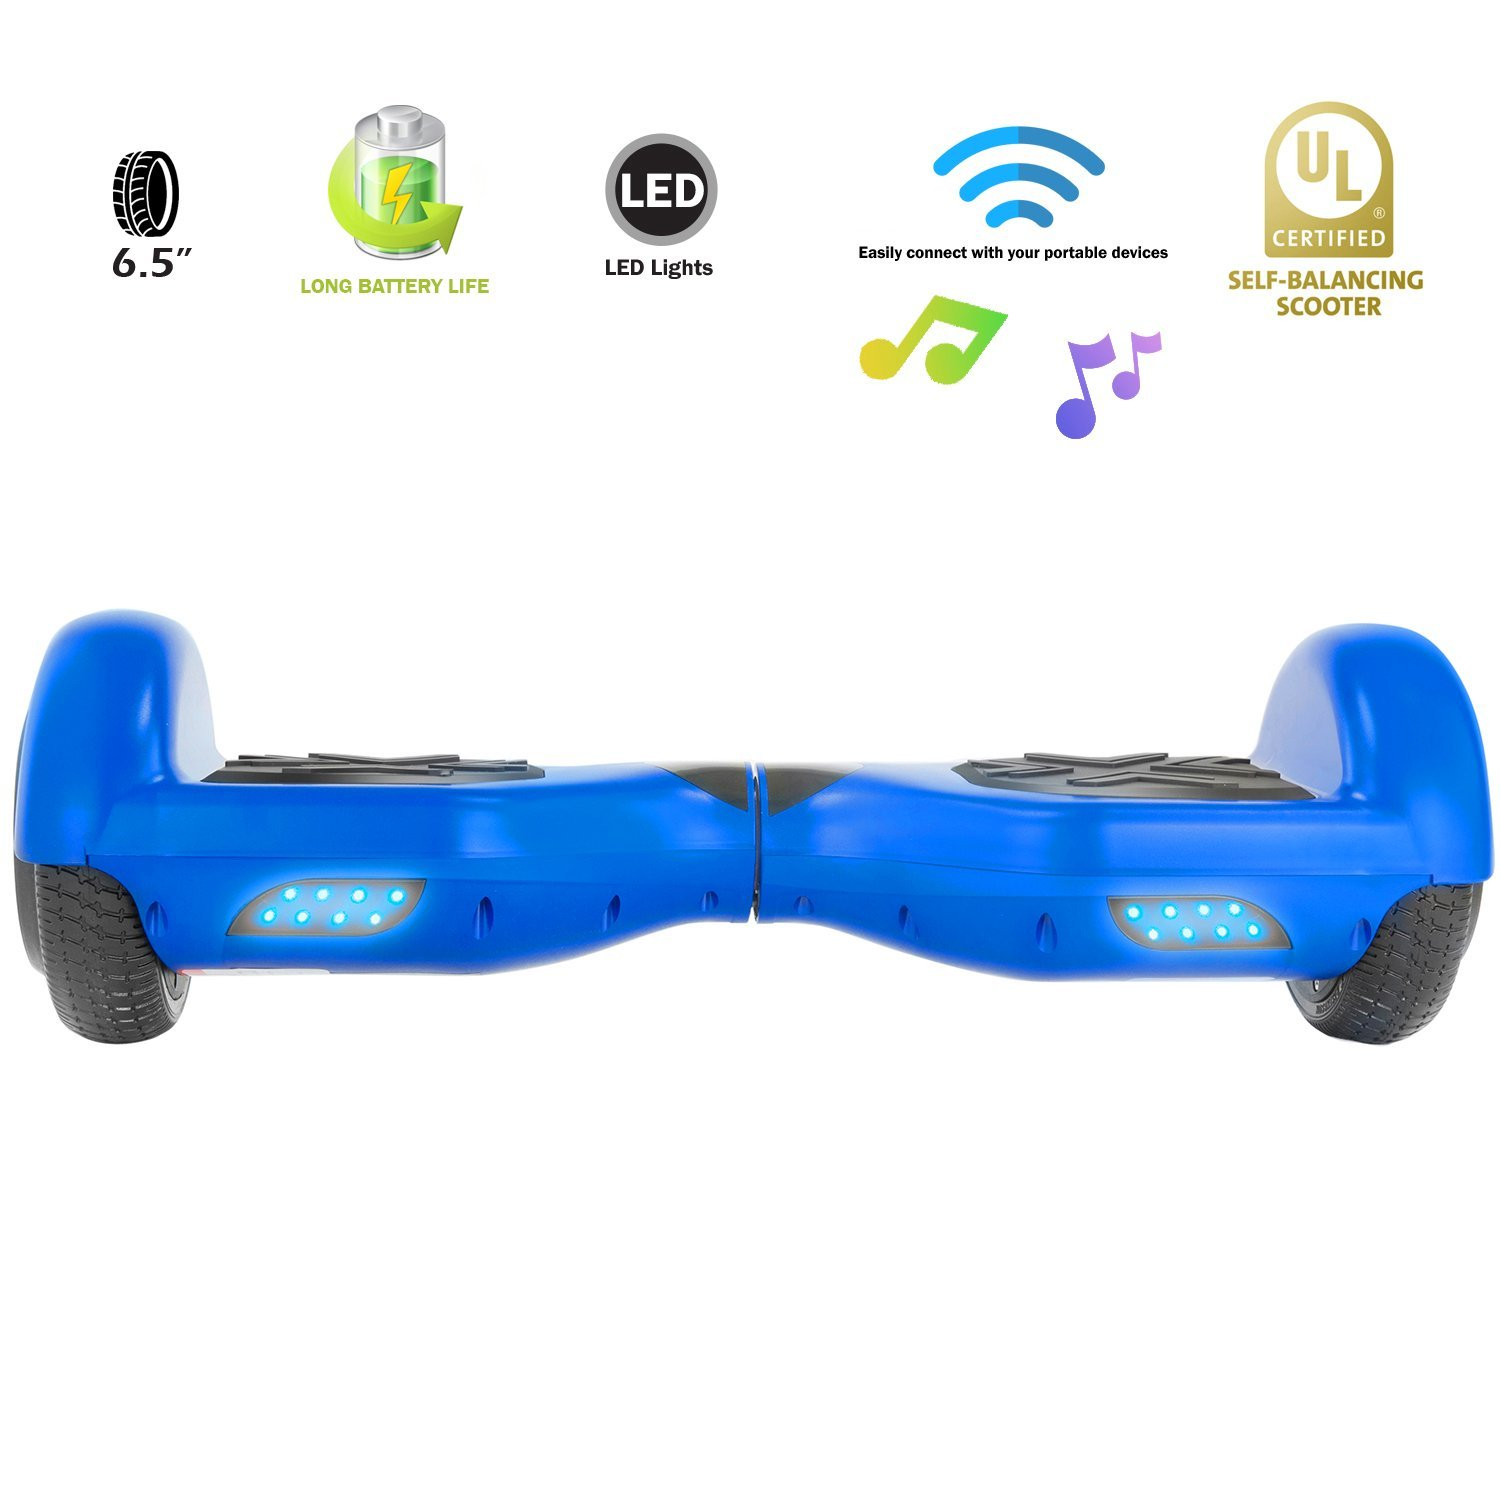 XPRIT Easter Sale Hoverboard w/Bluetooth Speaker (Blue) by XPRIT (Image #4)